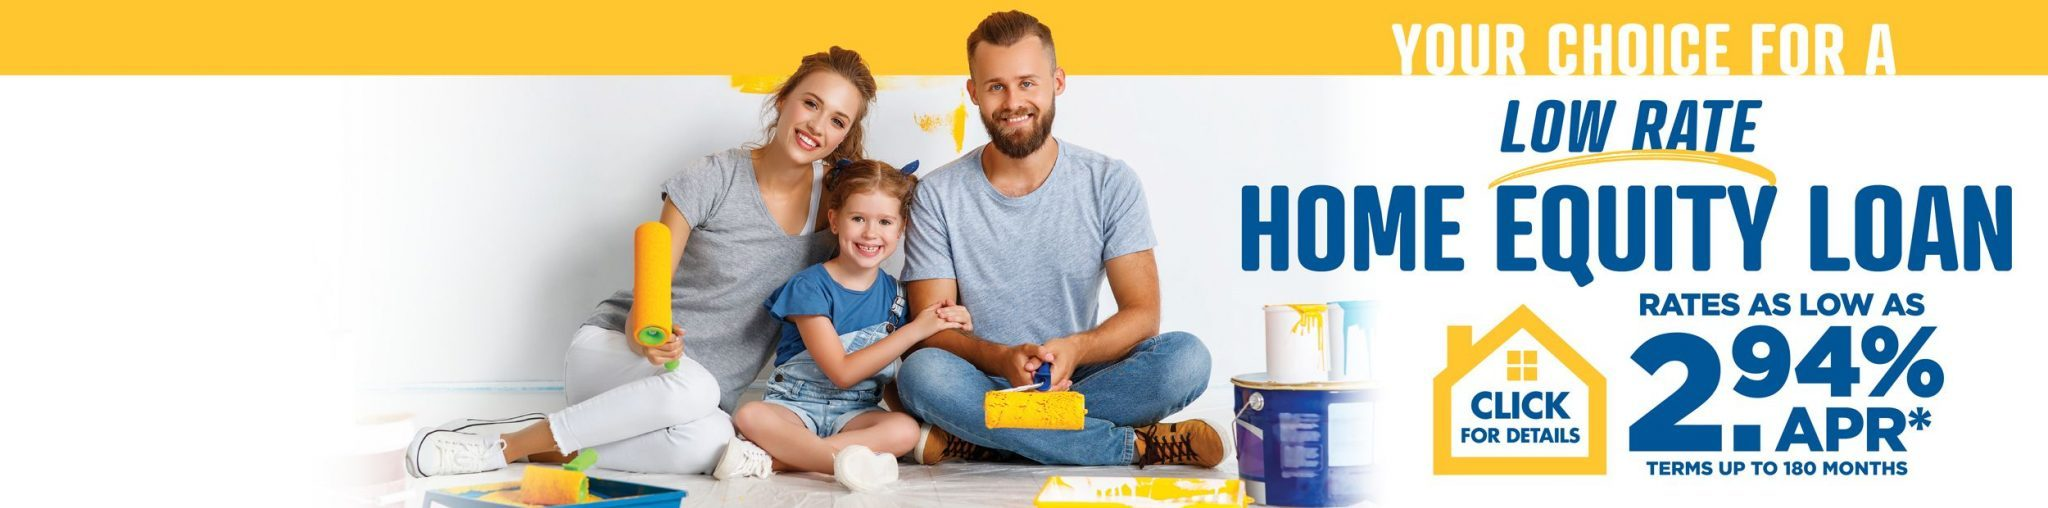 Family painting wall yellow. Home equity line of credit promotion.